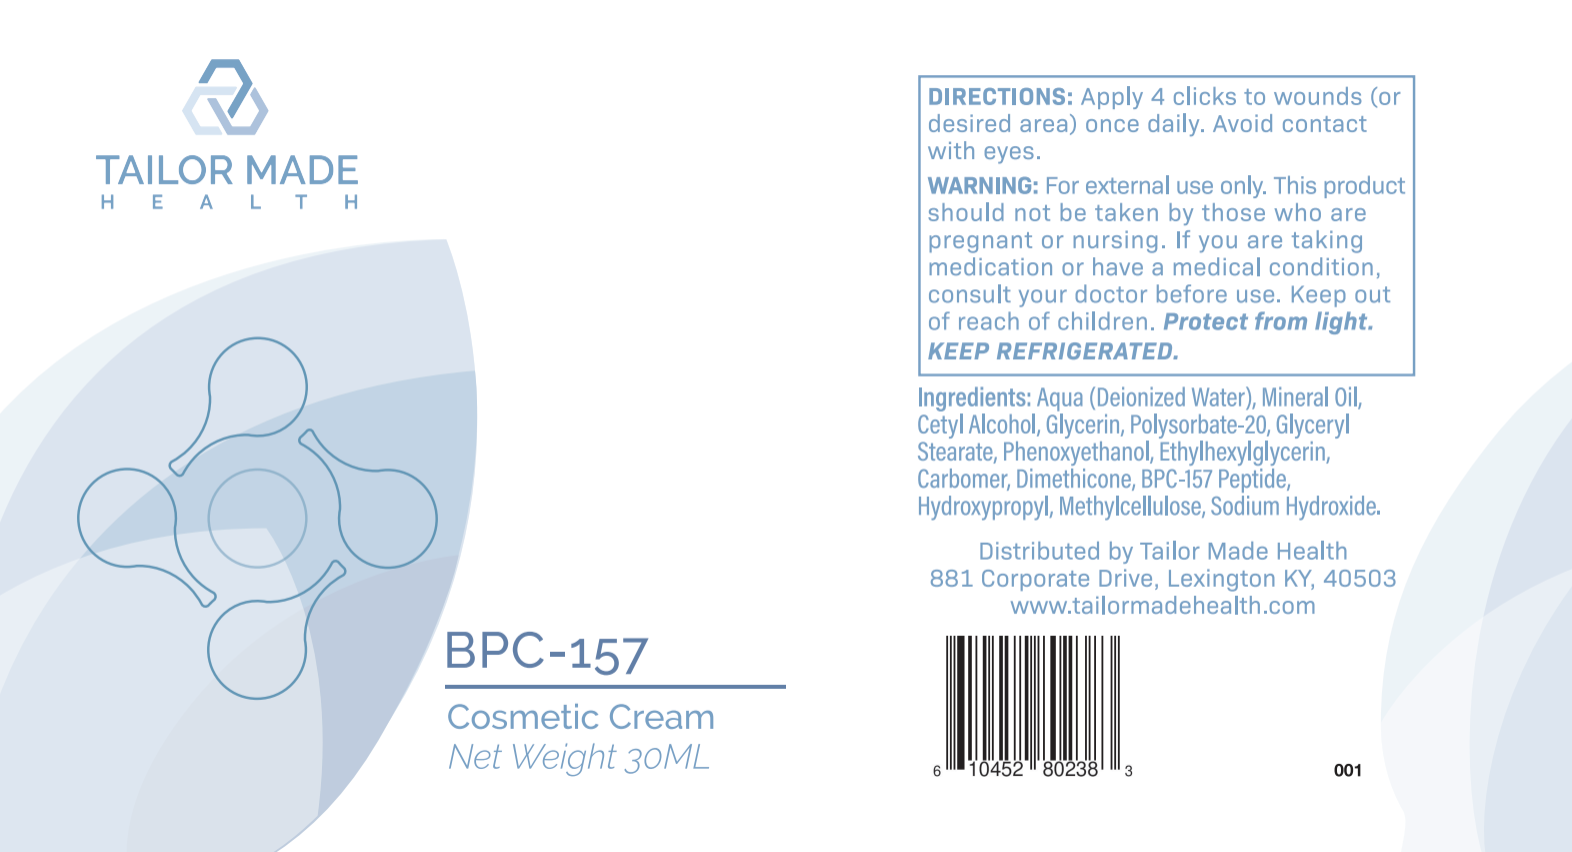 BPC-157 Cosmetic Cream